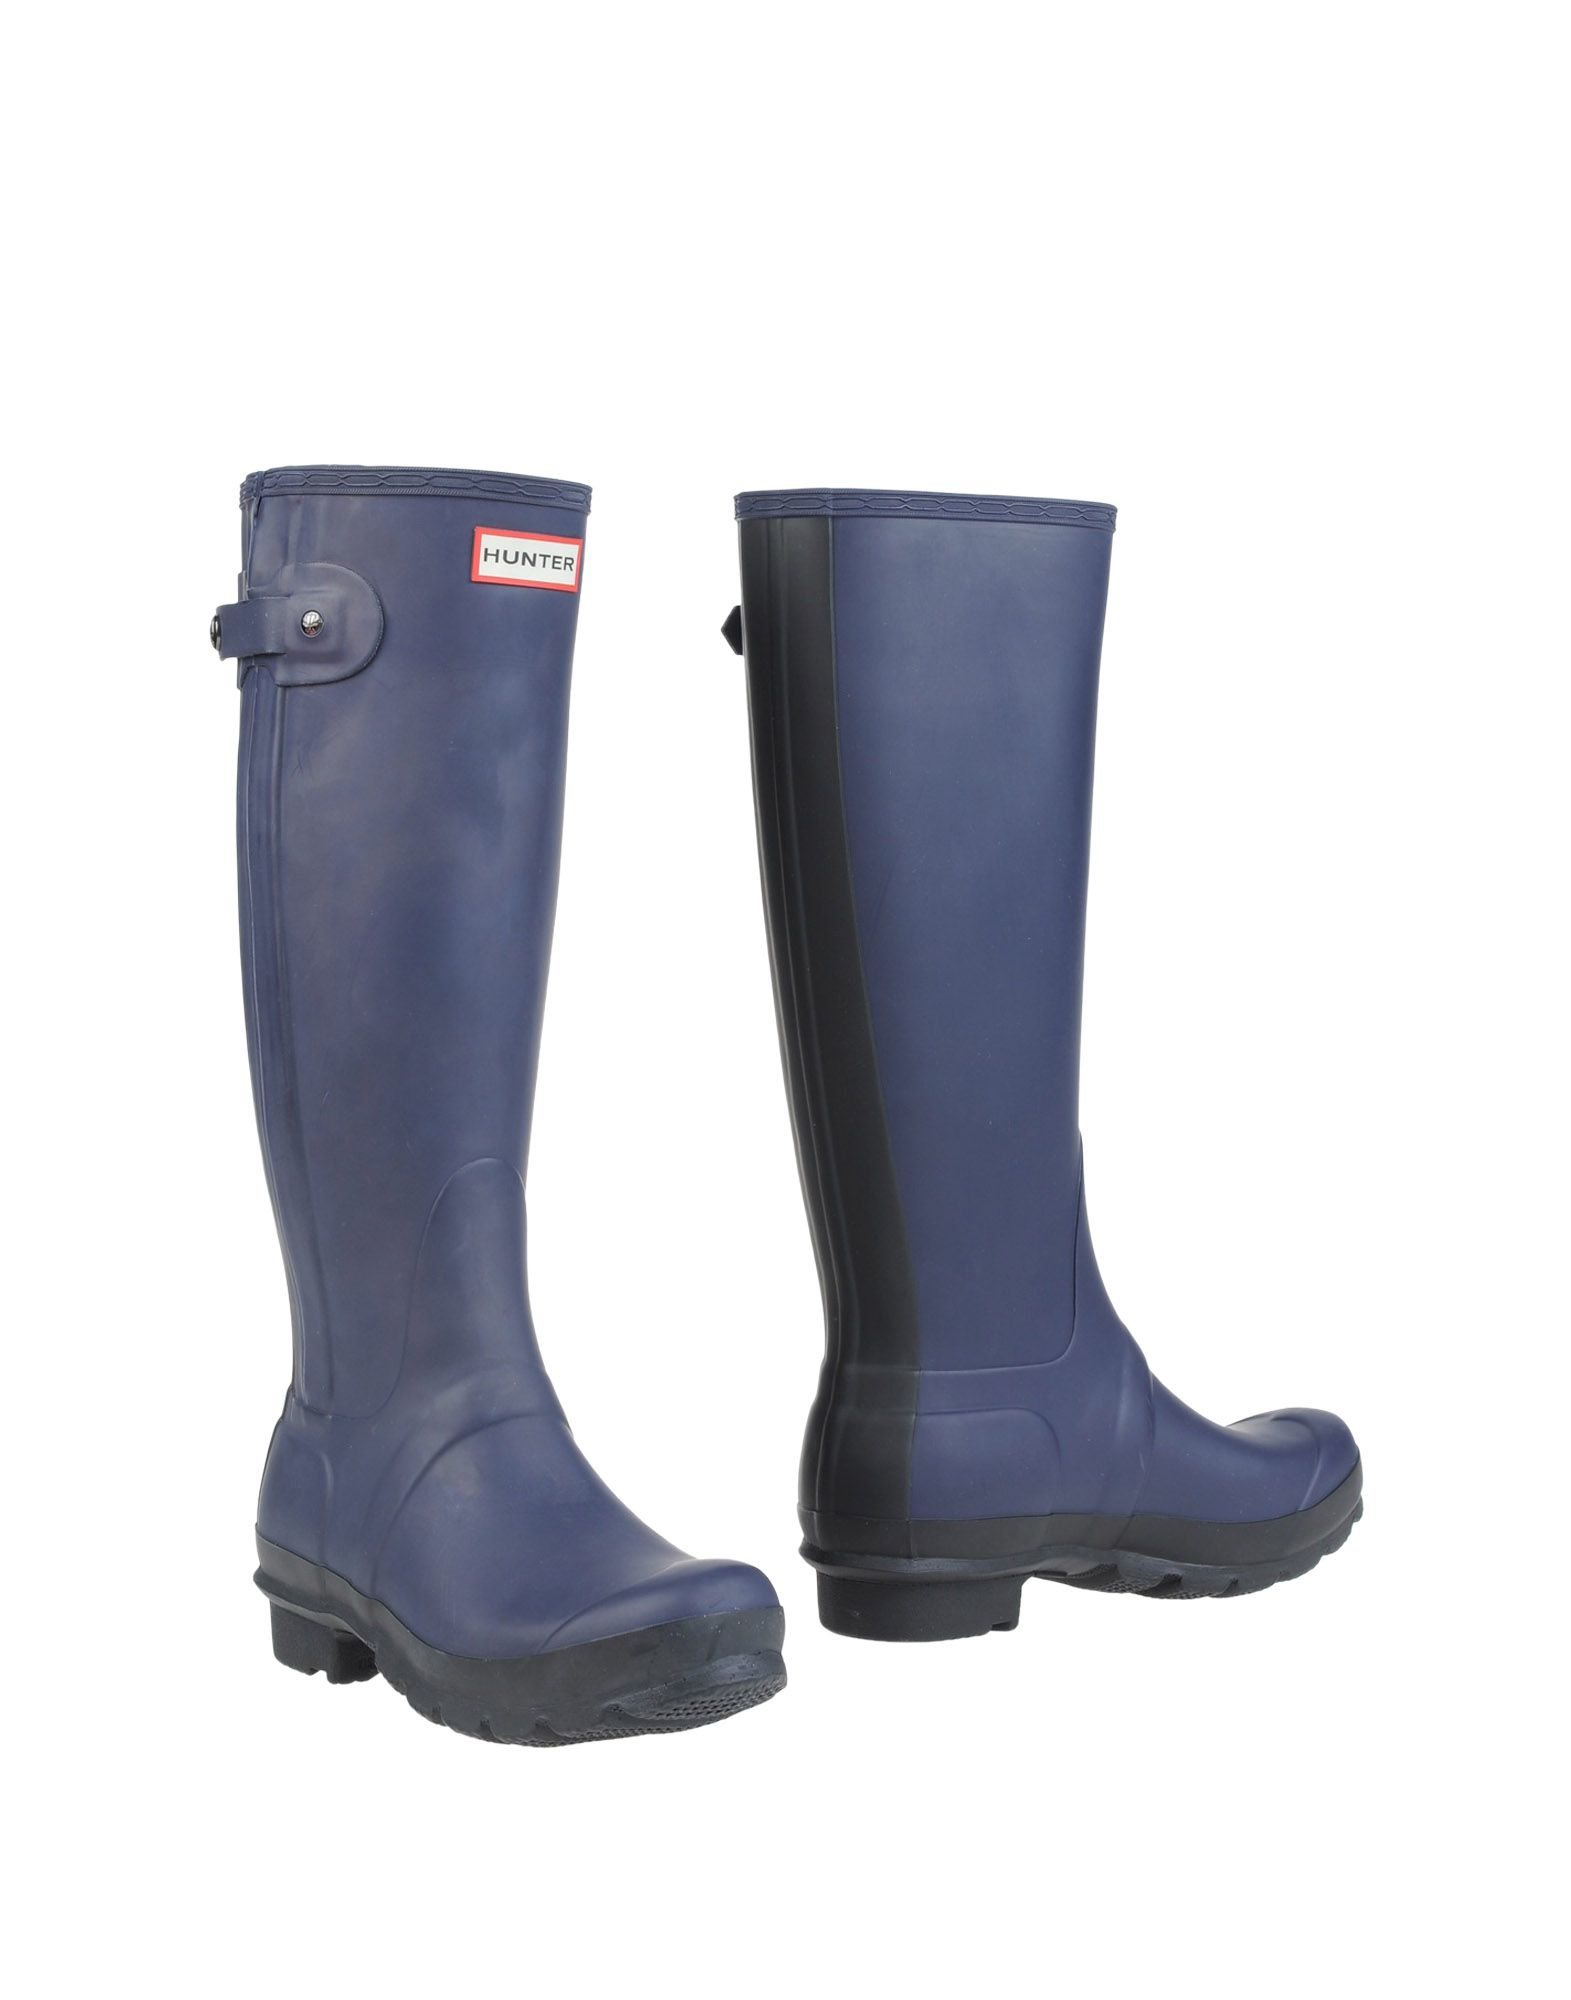 Lyst - Hunter Boots in Blue